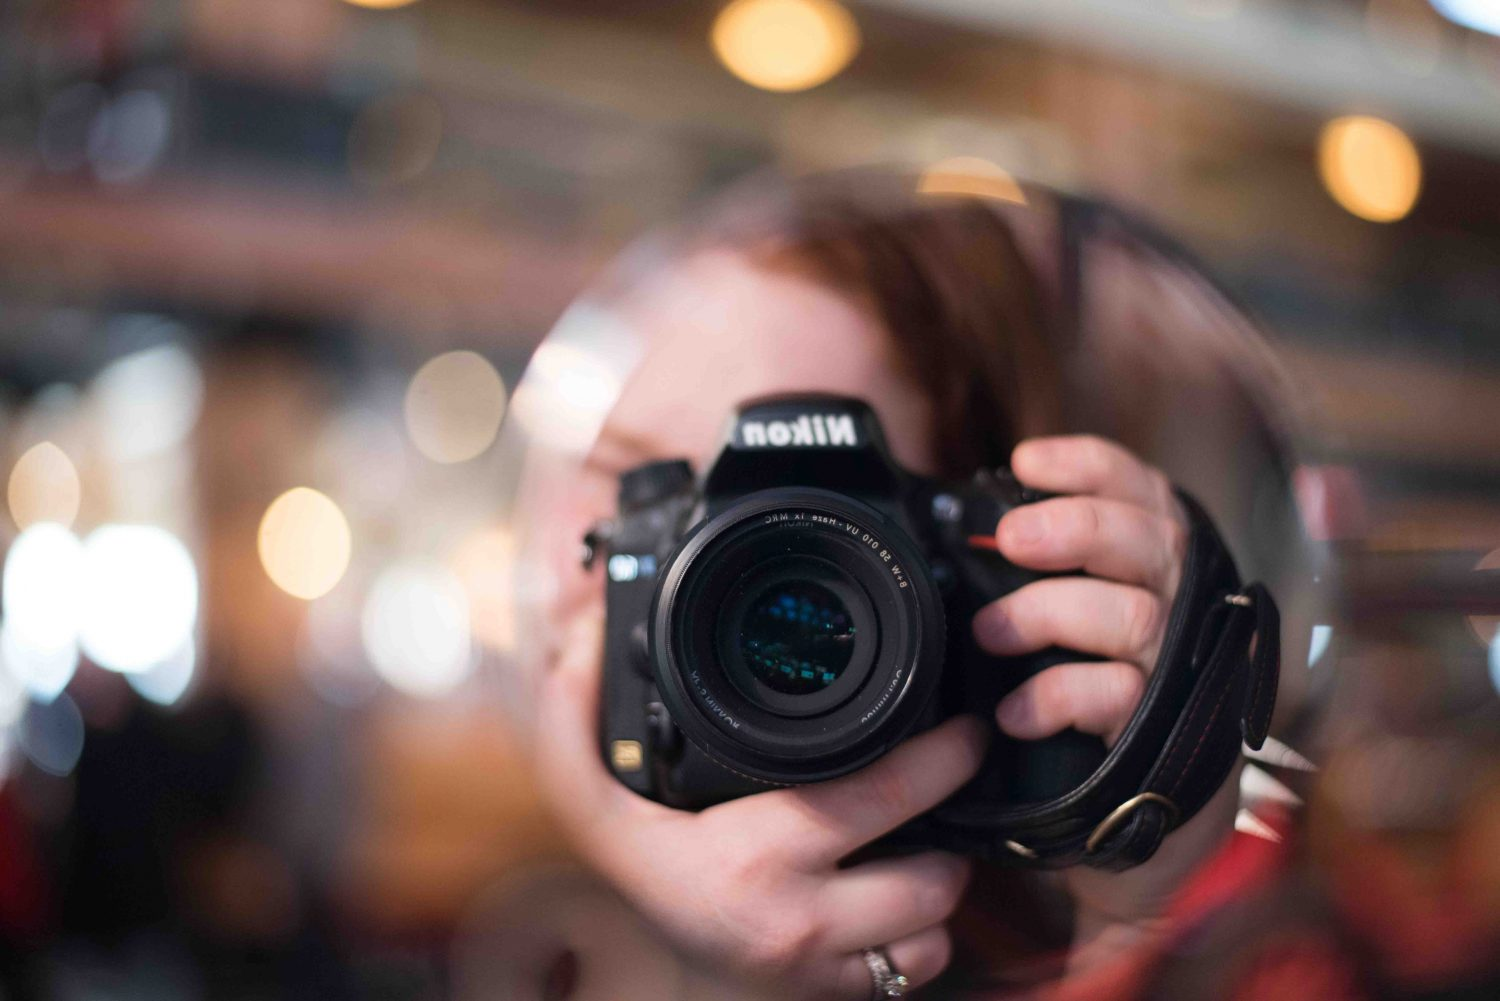 Reflected image of woman taking a photograph holding Nikon camera with blurry background